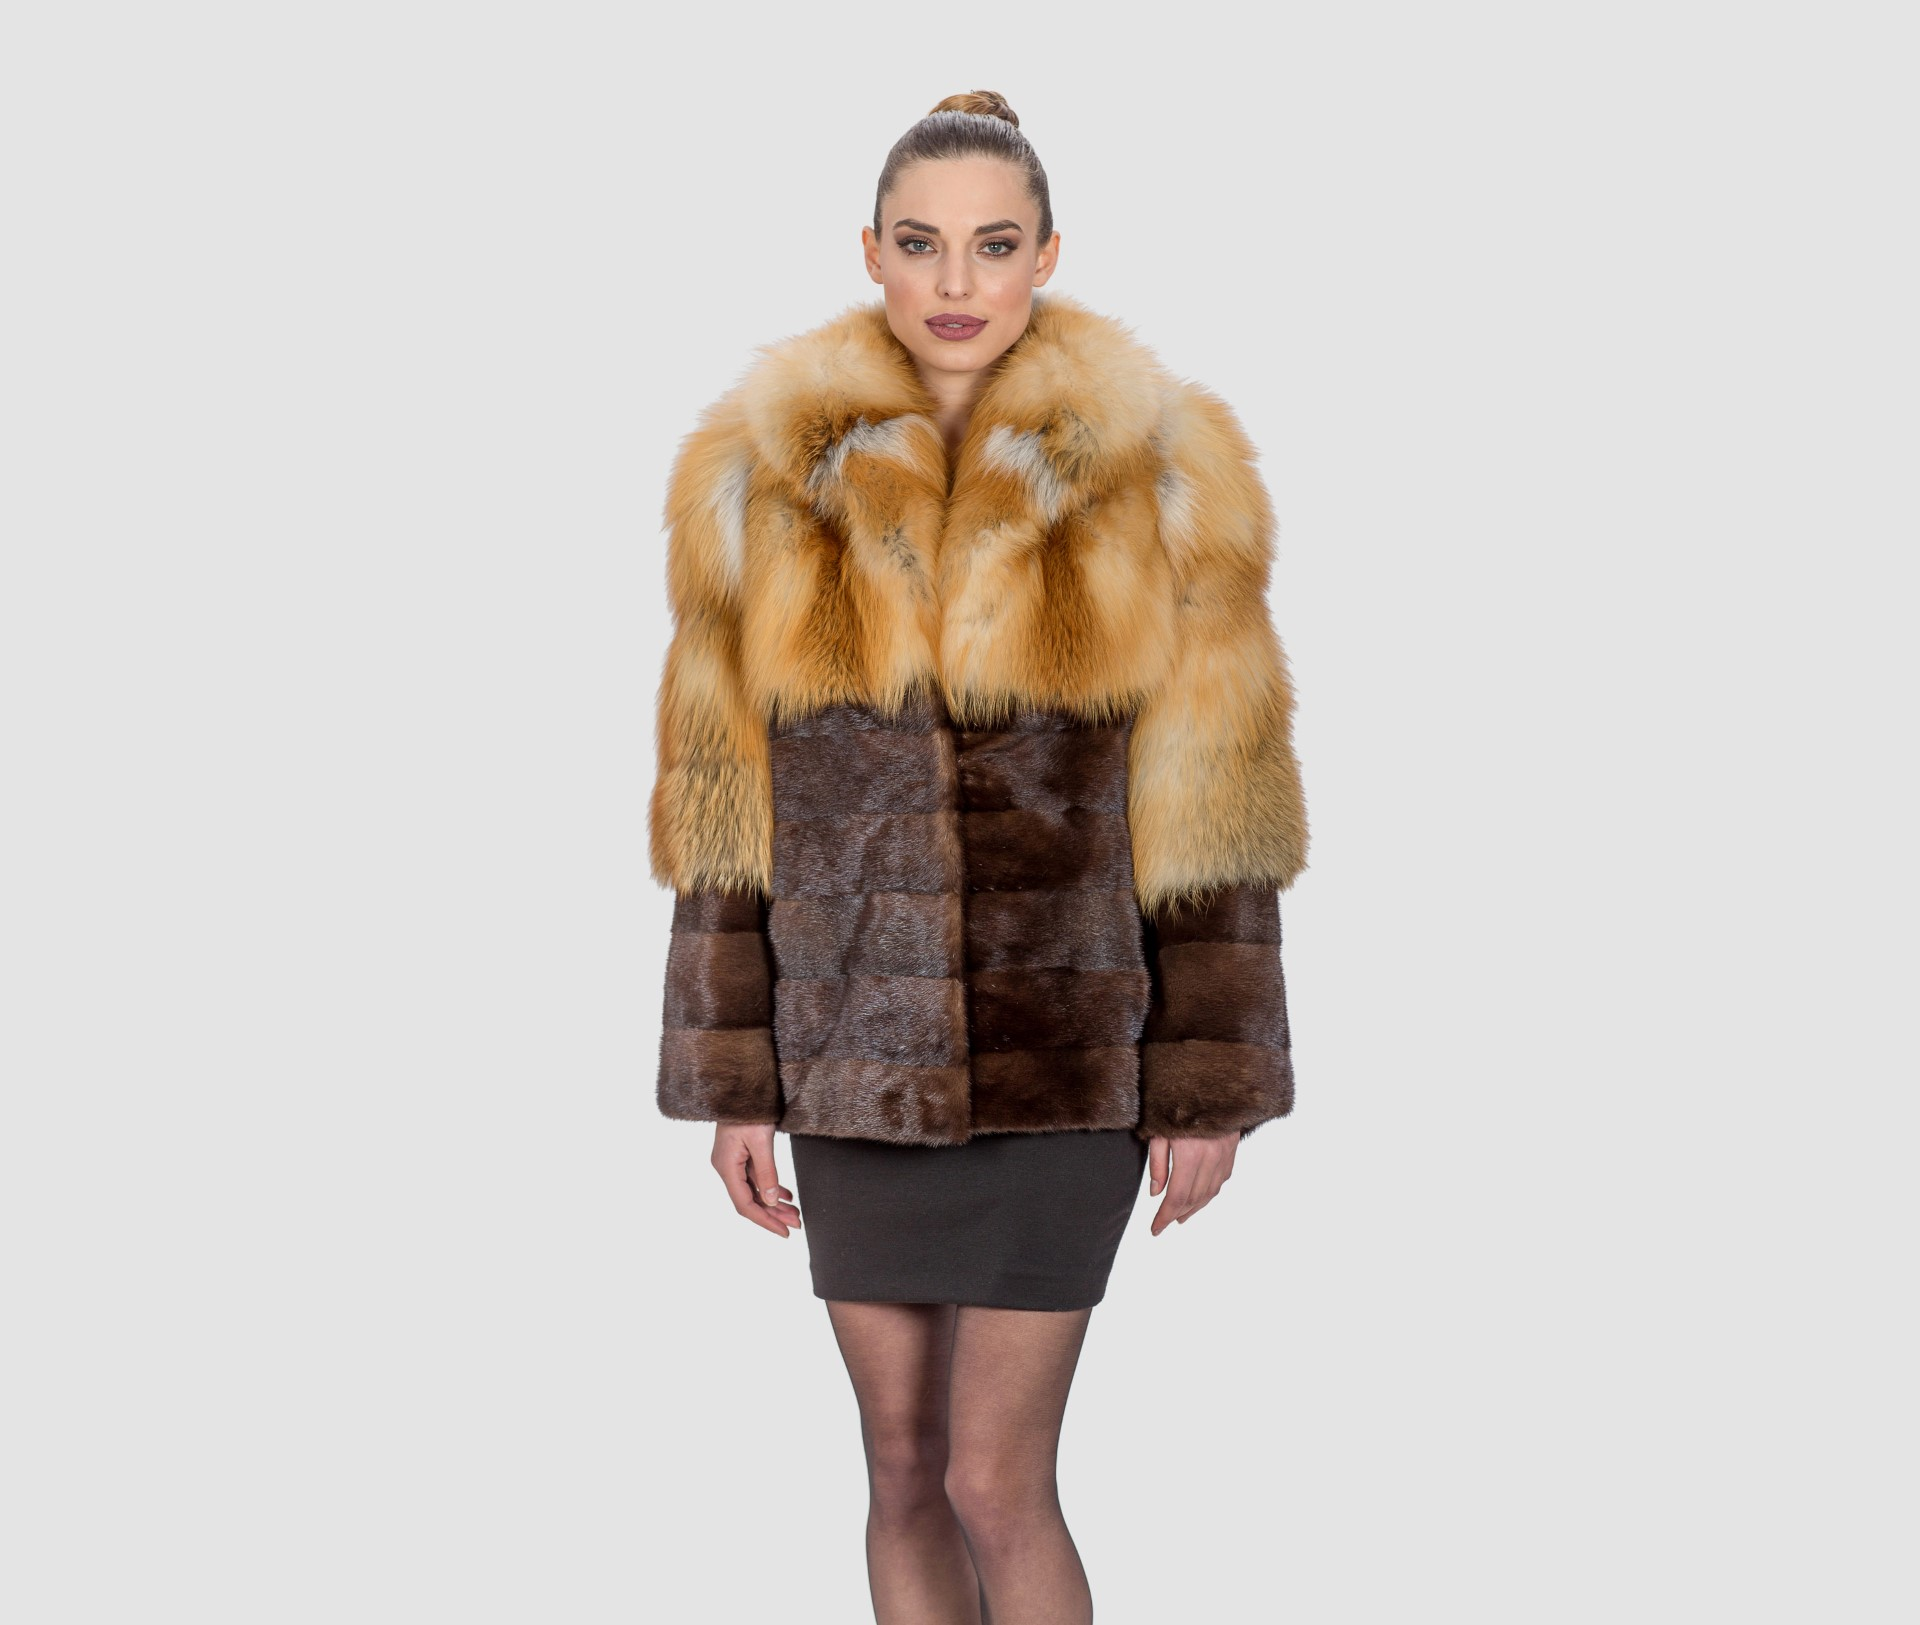 Fox and Mink Fur Jacket. 100% Real Fur Coats and Accessories.